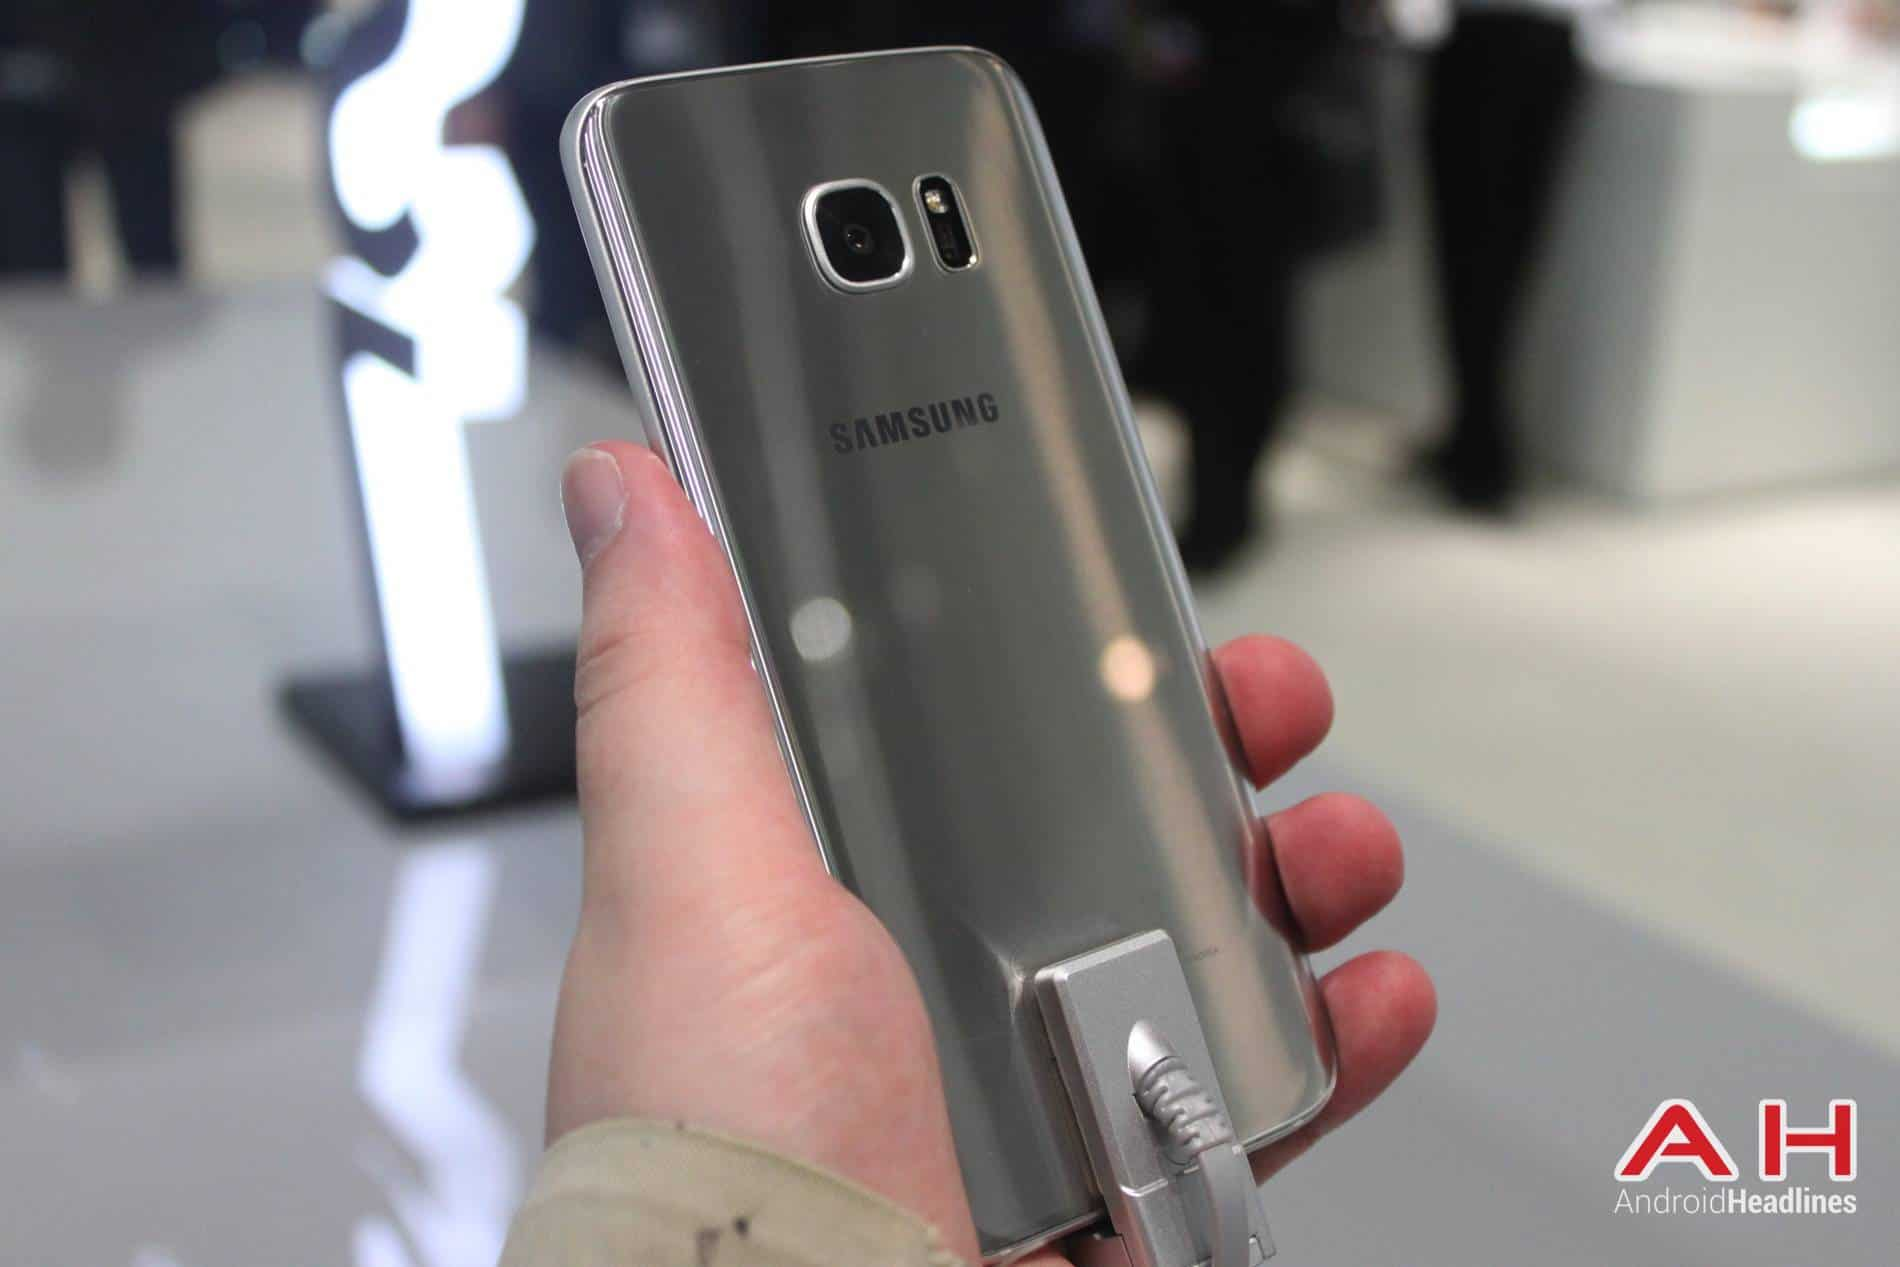 Galaxy S7 Edge MWC Booth AH 14